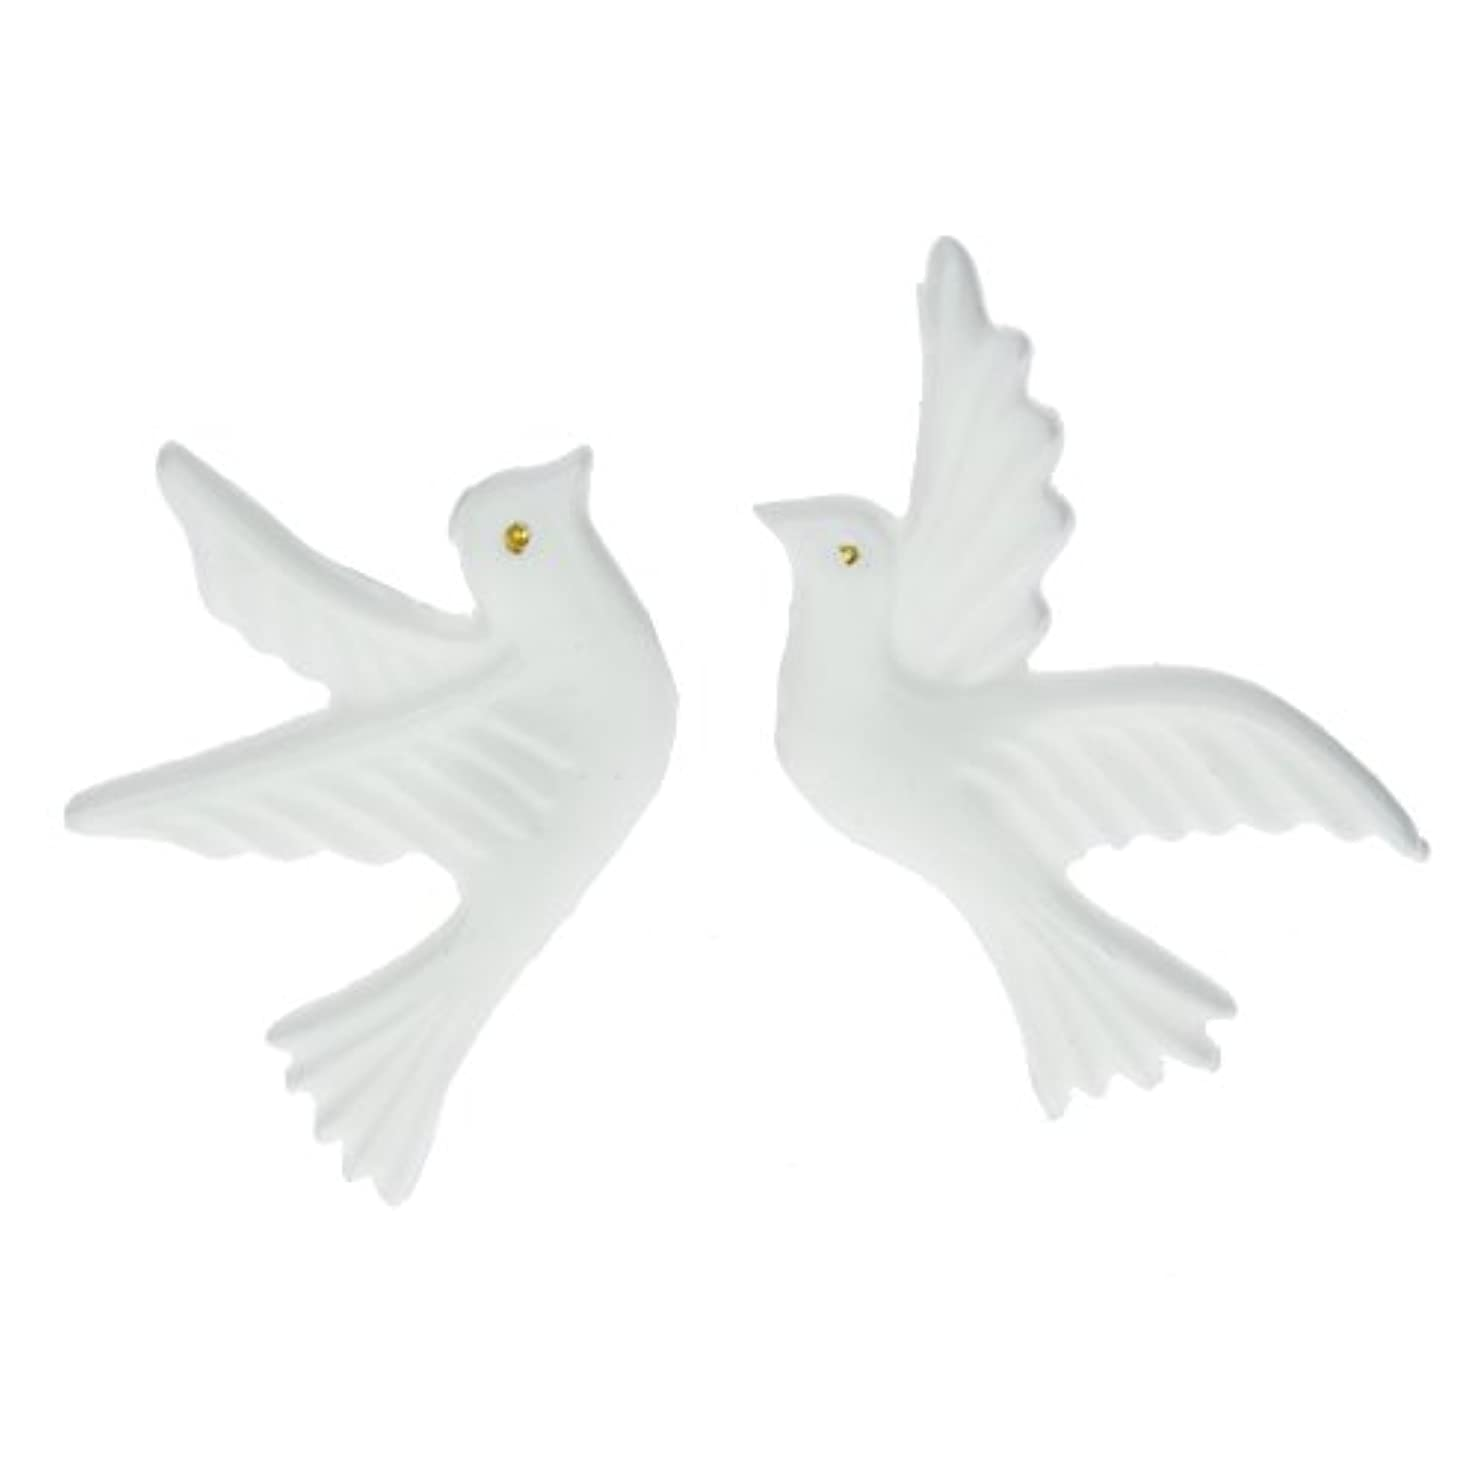 Efco Wax Decoration Pair of Doves with Golden Eye 90 x 60 mm 2 pcs. Gold/White